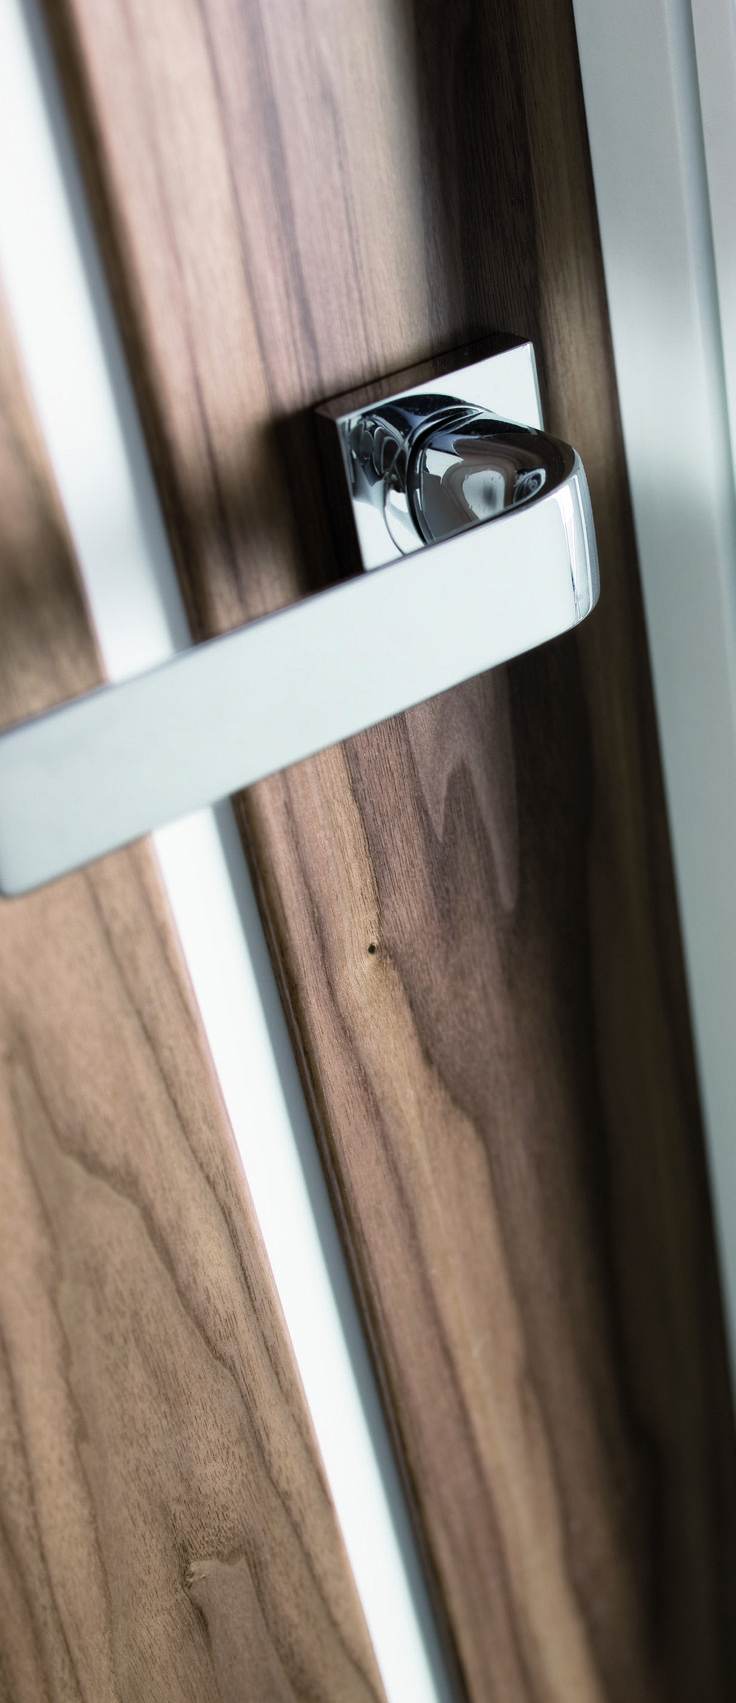 Robust and functional without losing an apex of elegance. #handle #design #interiordesign #doors